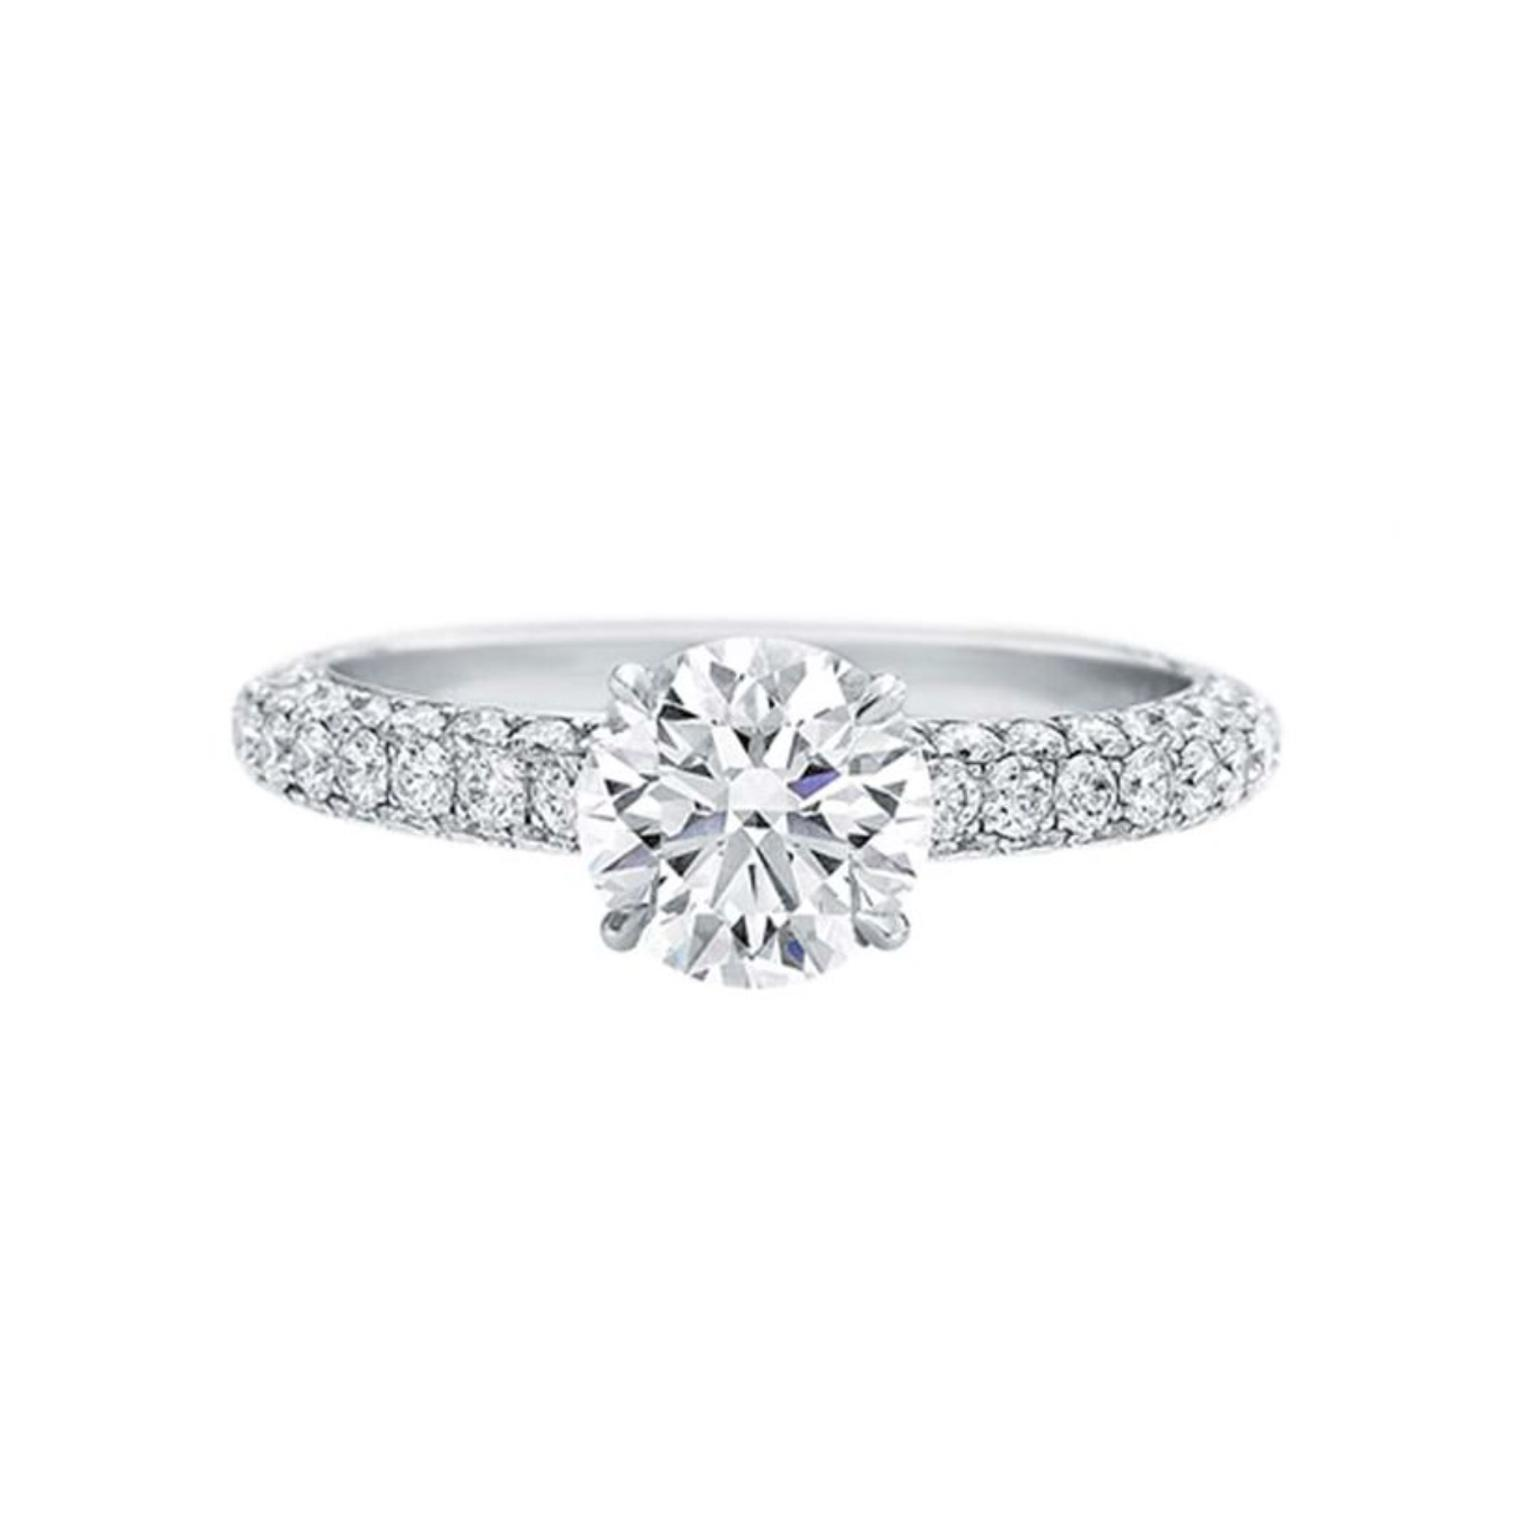 Impressive Sale Harry Winston Engagement Rings Price List Harry Winston Attraction Carat Diamond Engagement Ring Attraction Carat Diamond Engagement Ring Harry Winston Harry Winston Engagement Rings wedding rings Harry Winston Engagement Rings